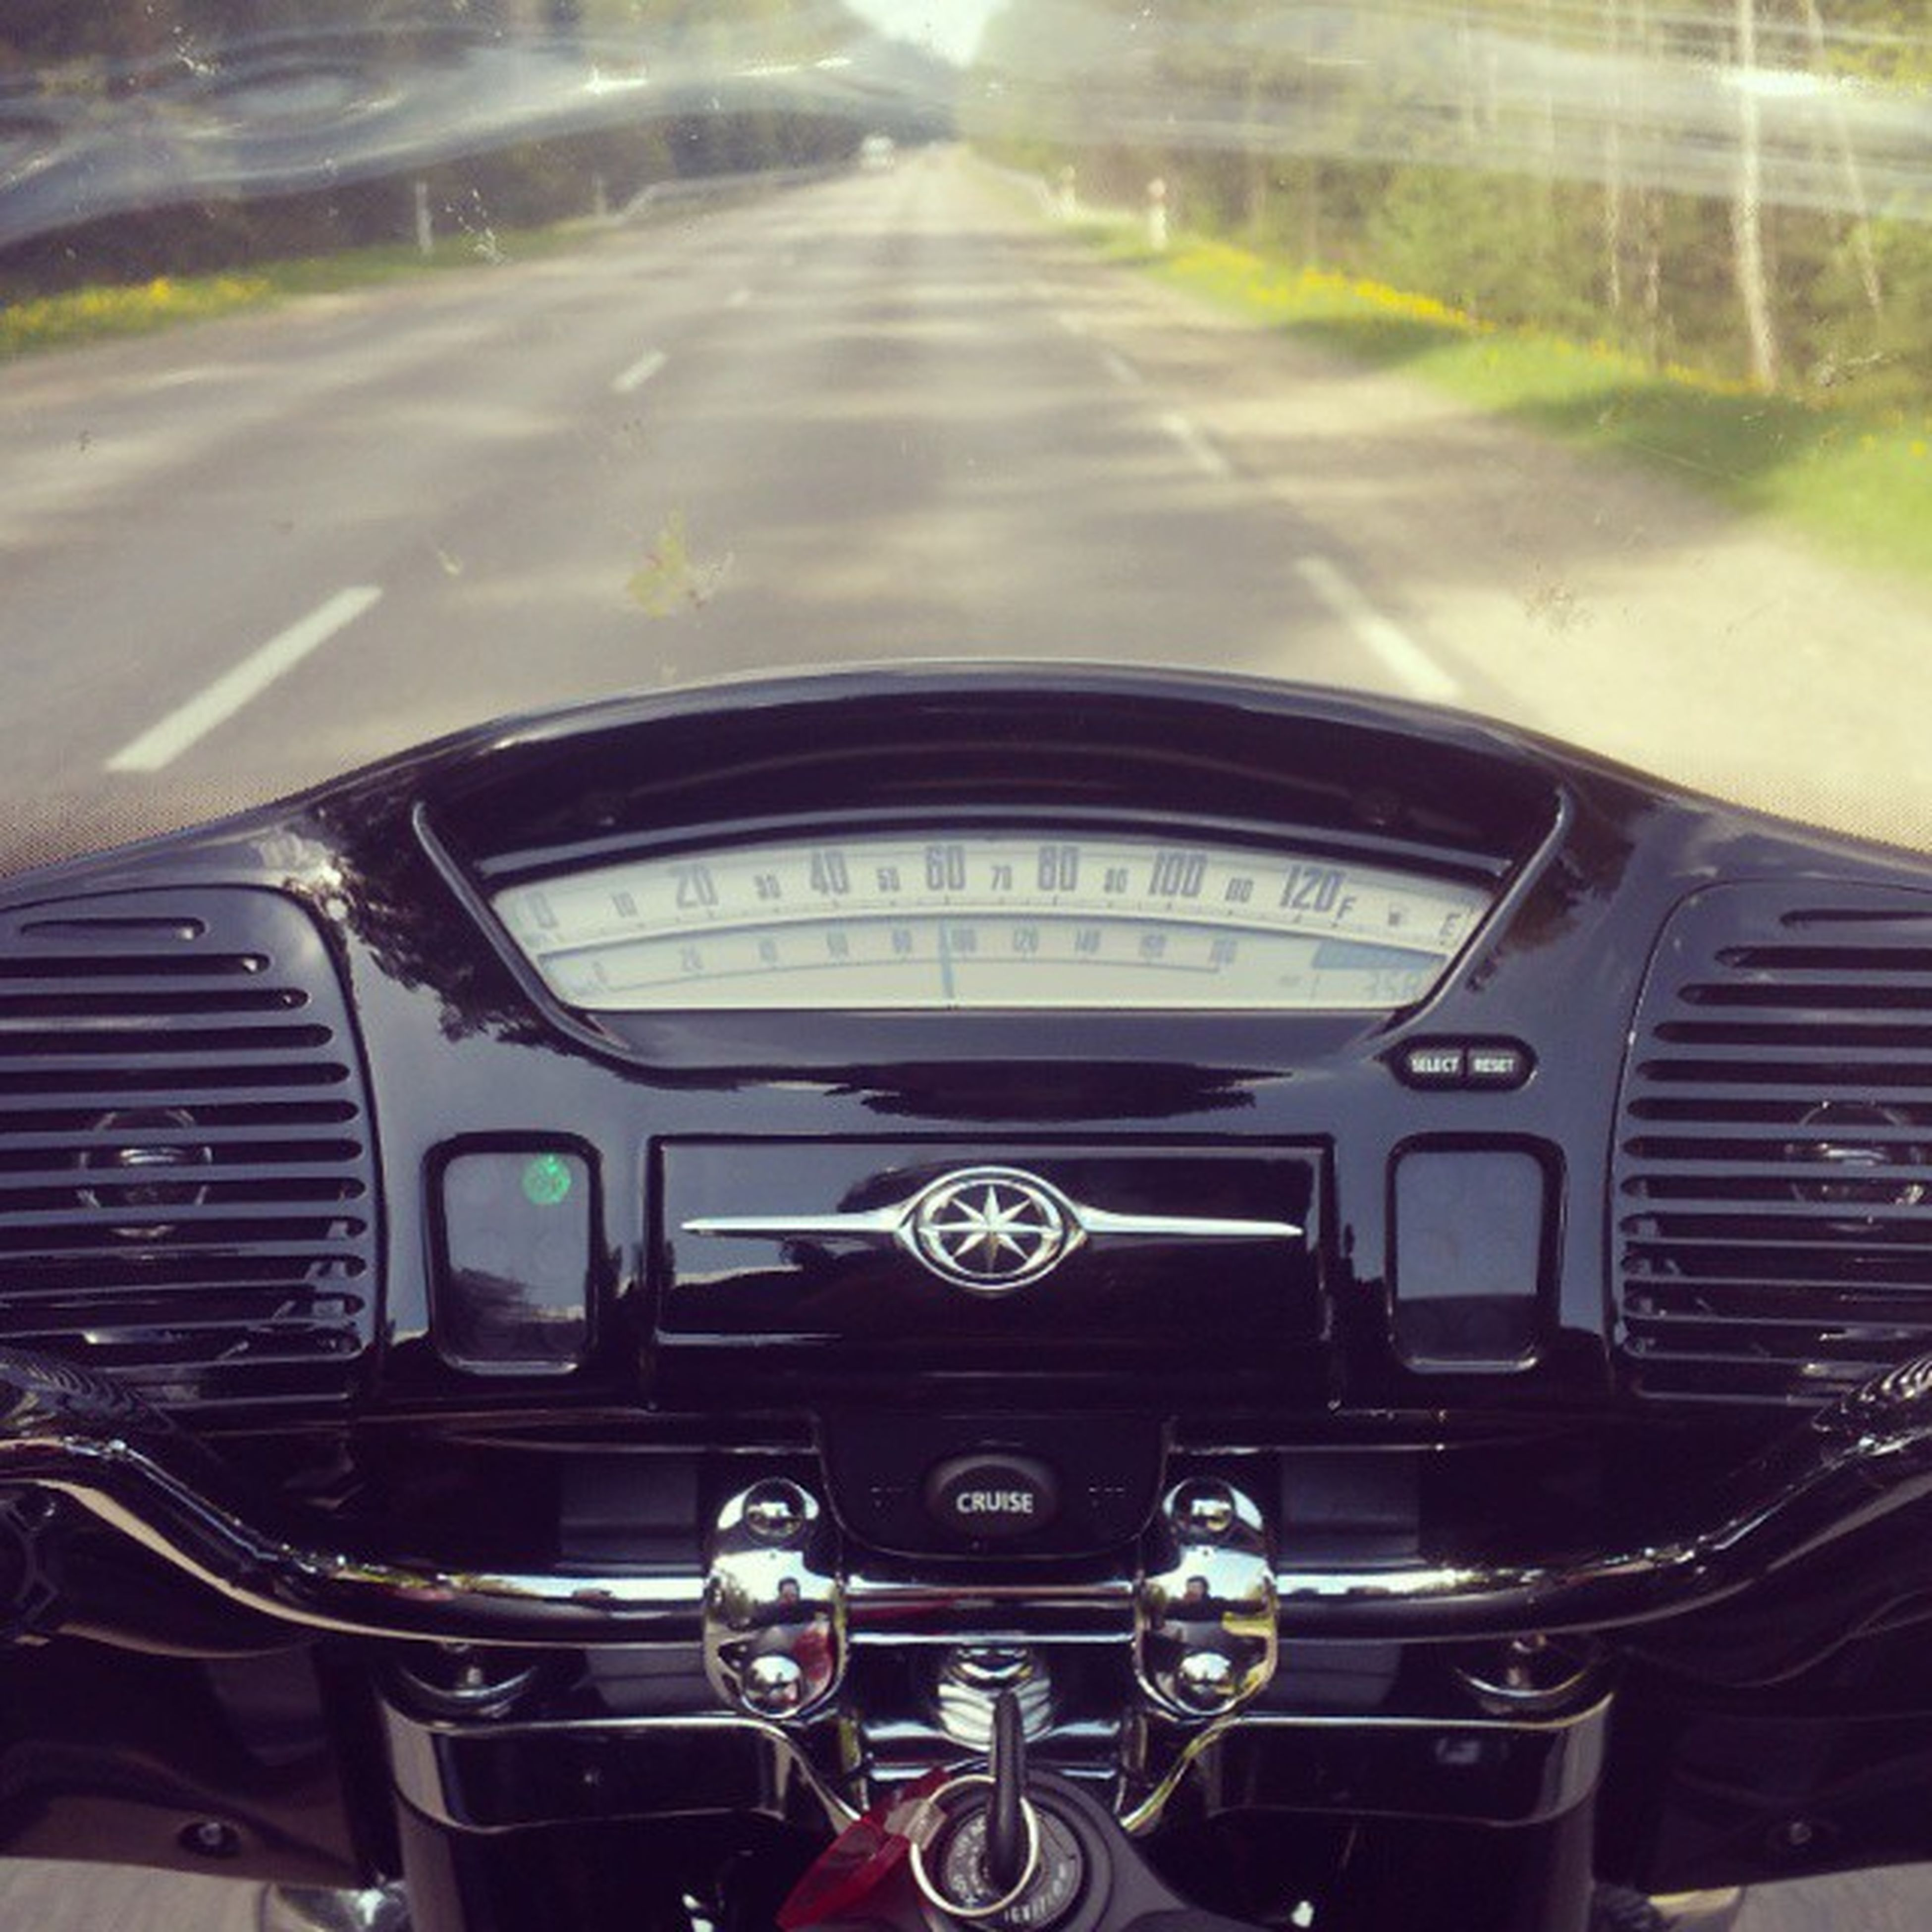 transportation, mode of transport, land vehicle, car, travel, vehicle interior, public transportation, headlight, windshield, part of, car interior, on the move, indoors, road, stationary, no people, journey, dashboard, train - vehicle, close-up